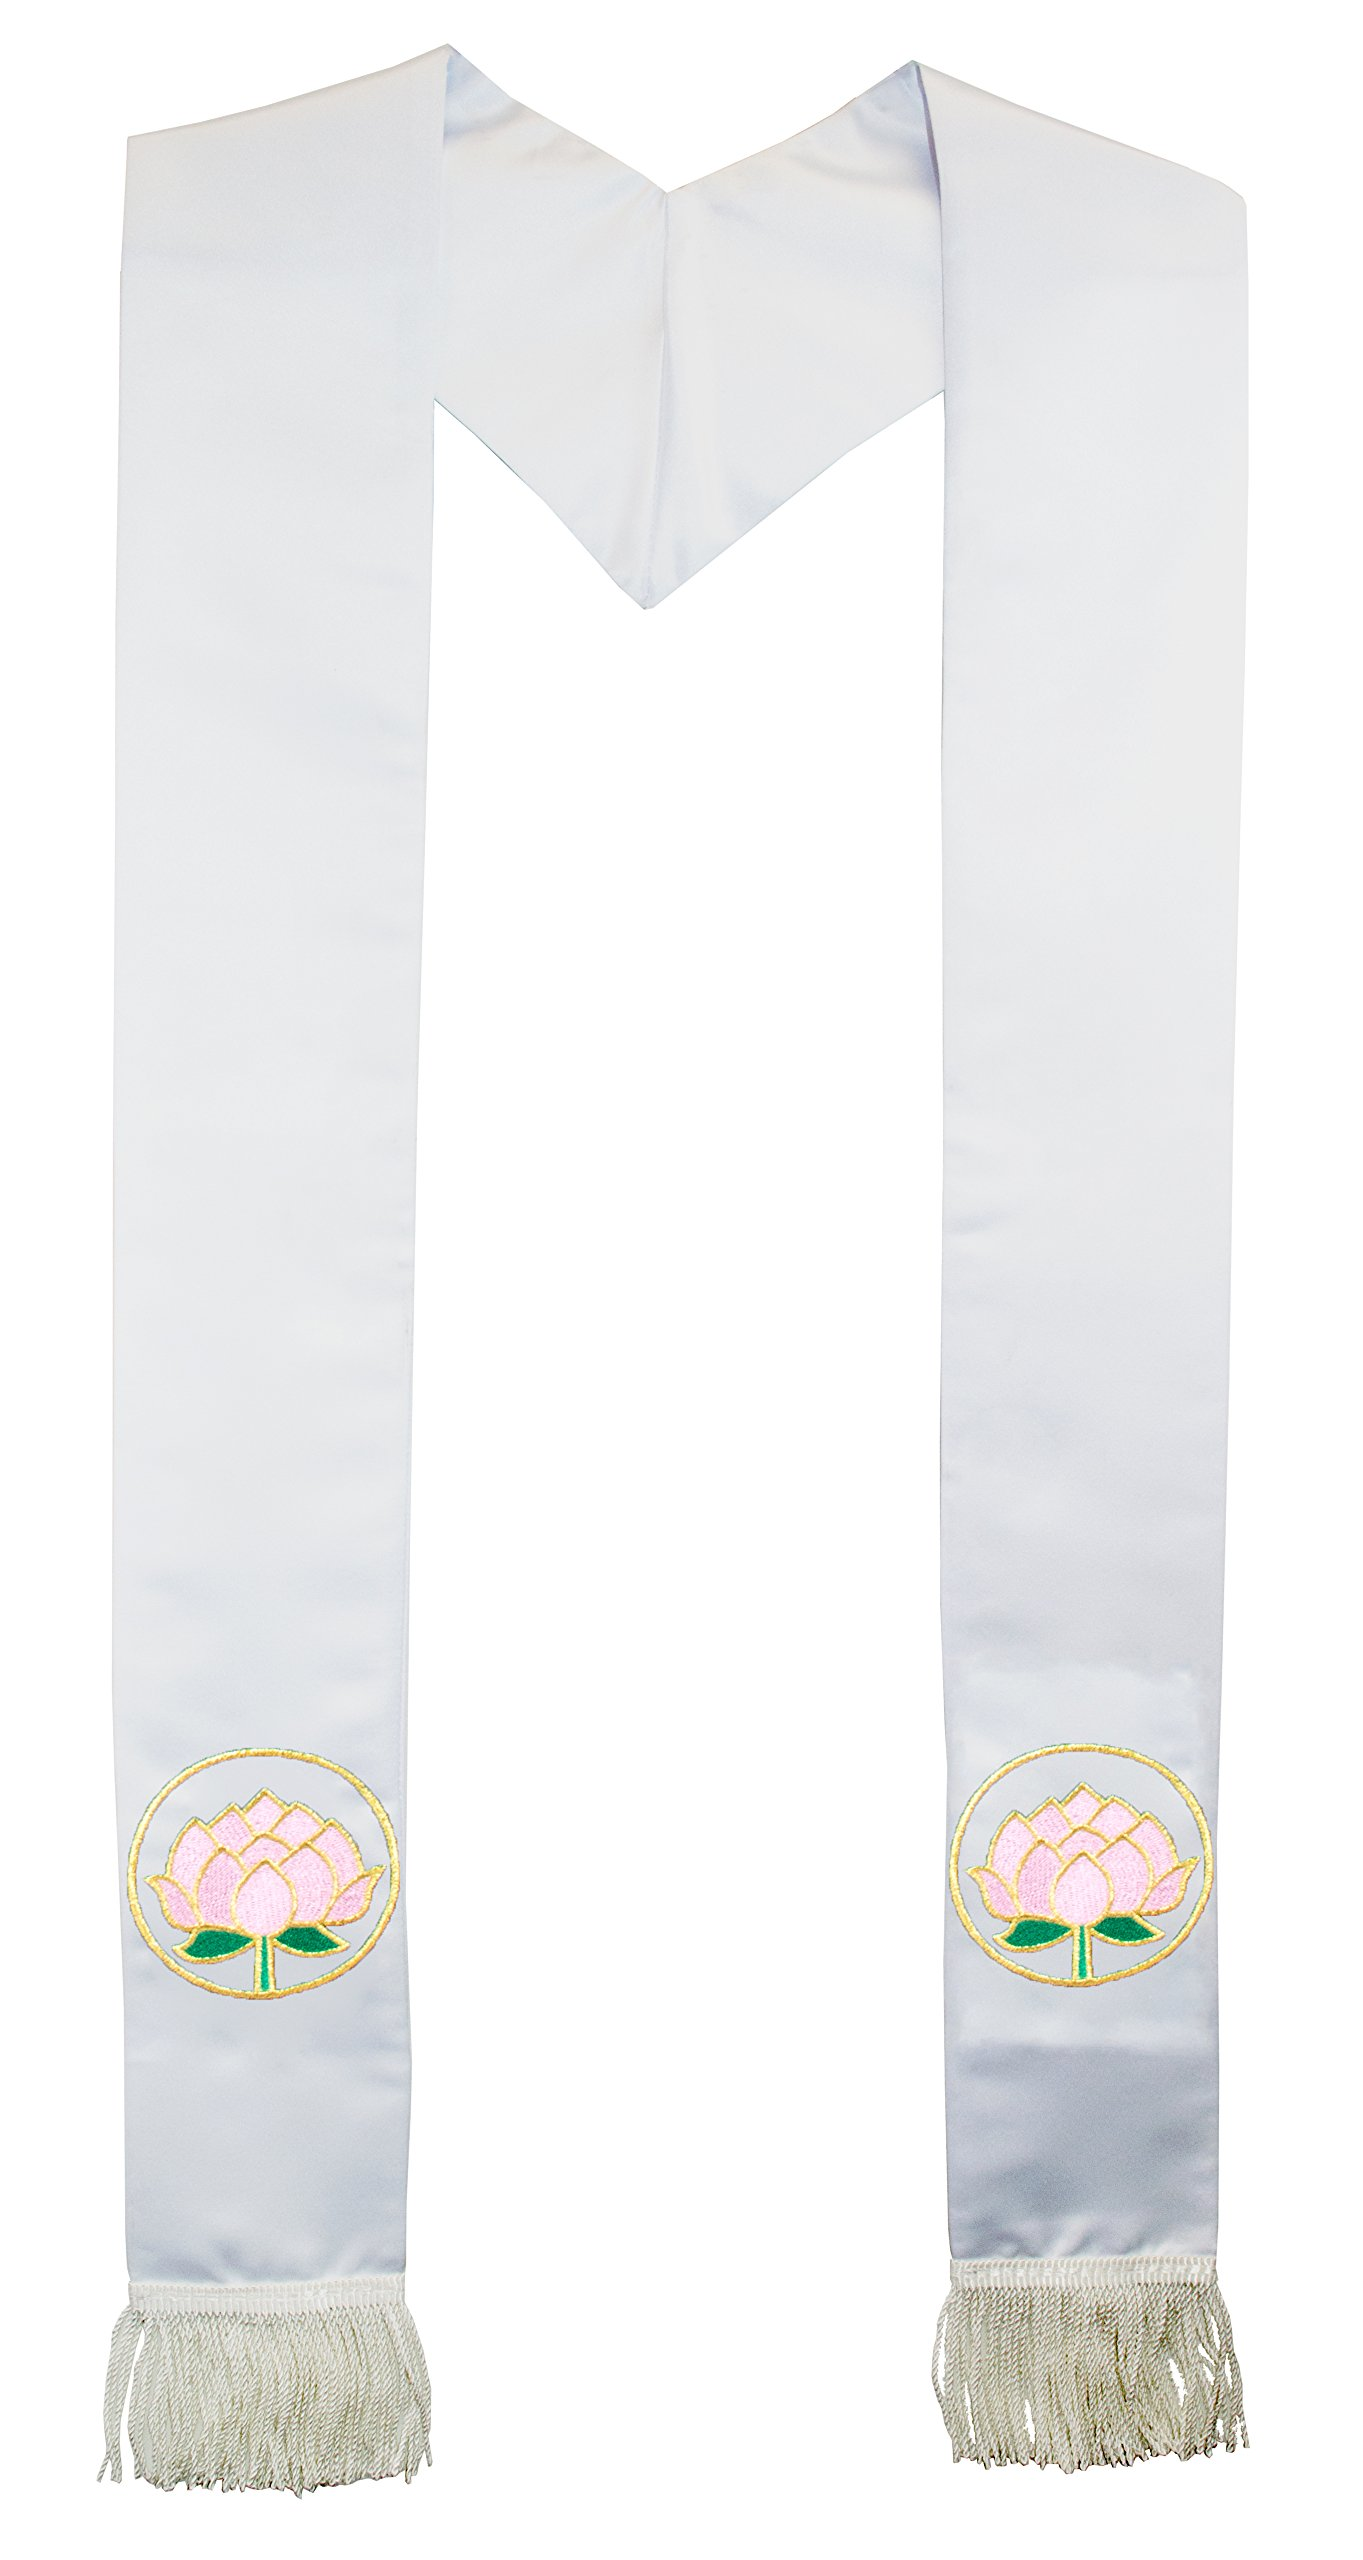 Deluxe Fringe White Satin Clergy Stole with Embroidered Lotus Flower